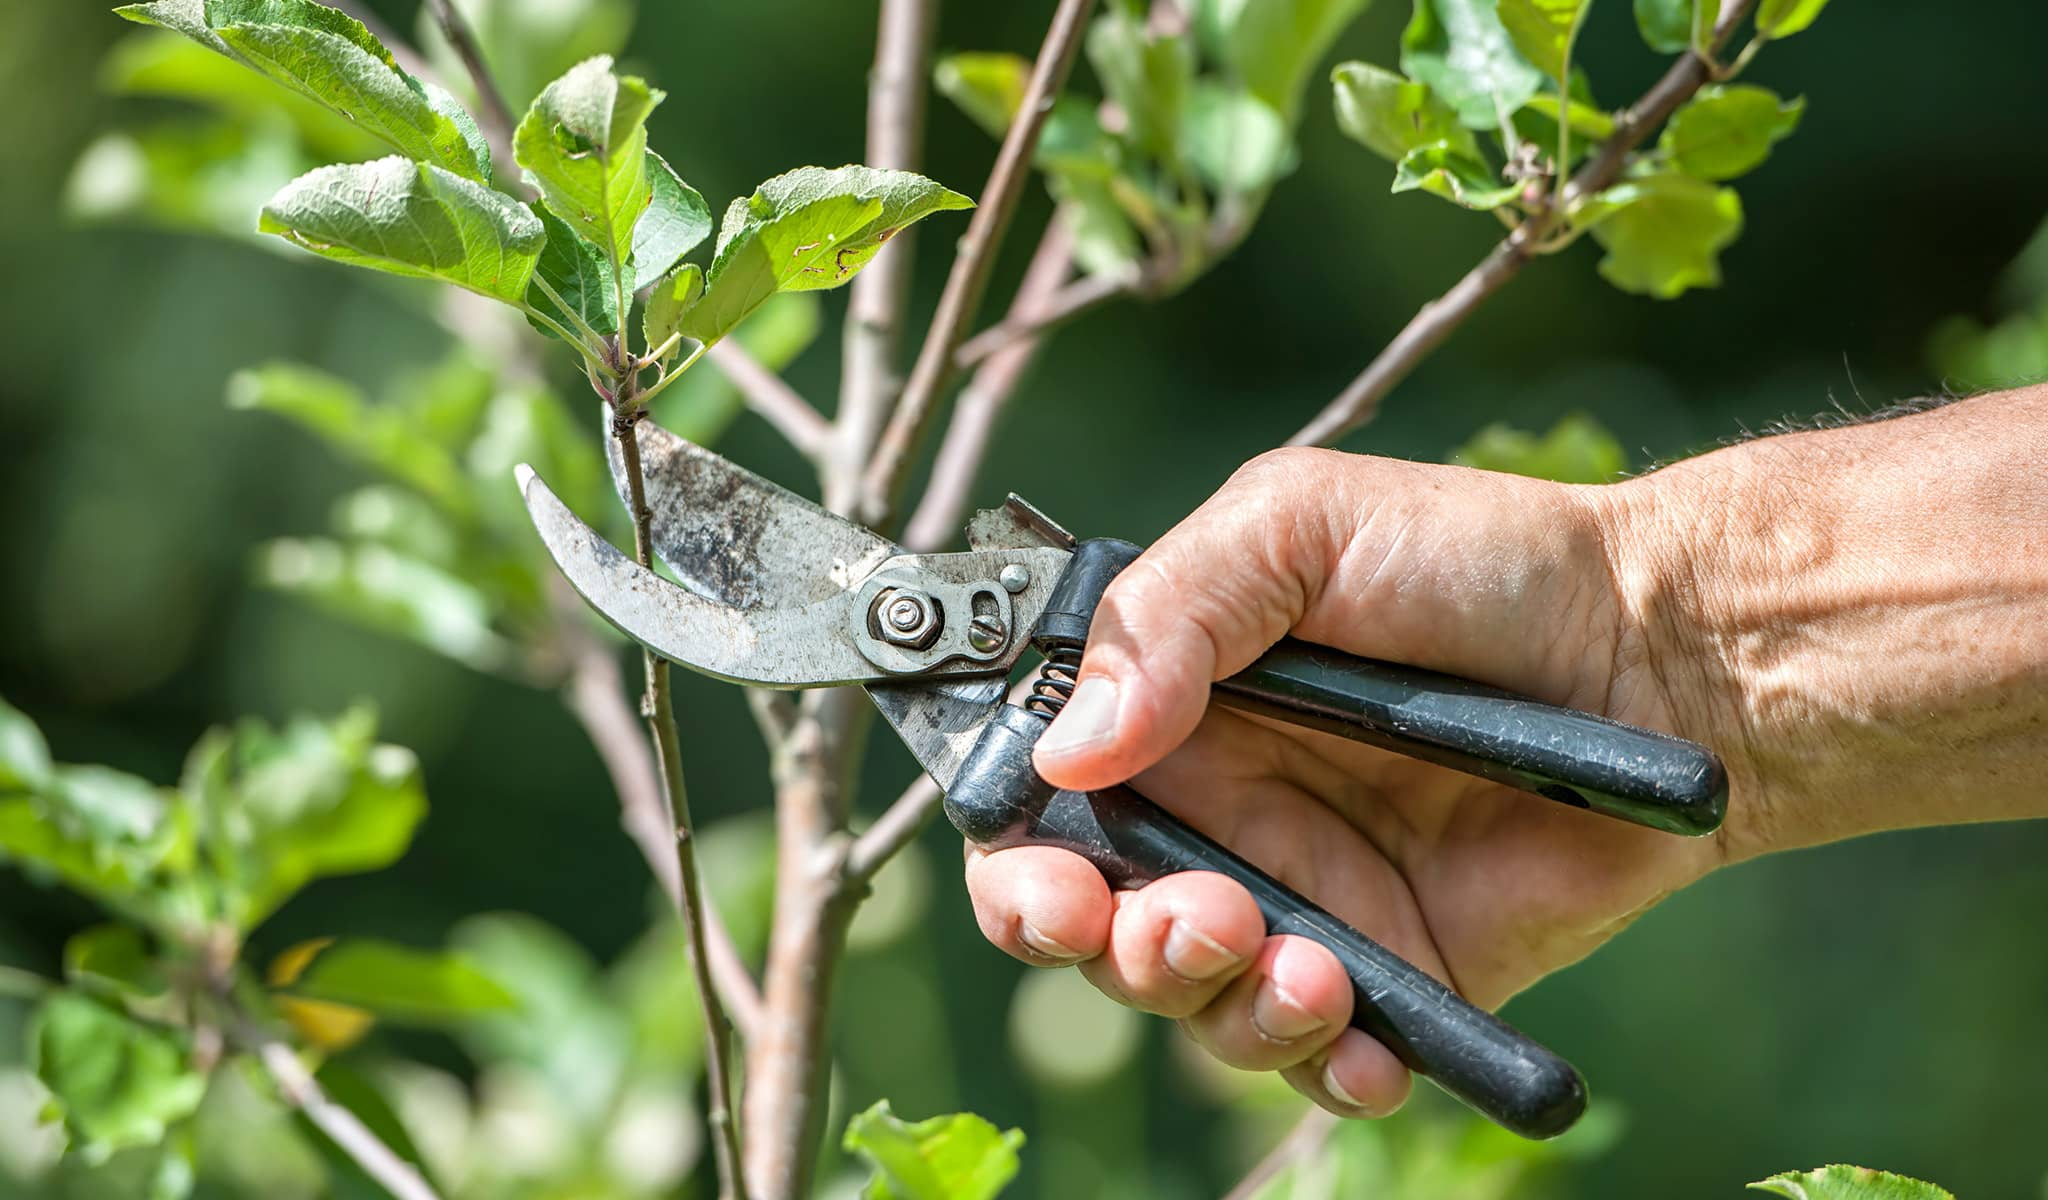 Arbor Services worker pruning a tree